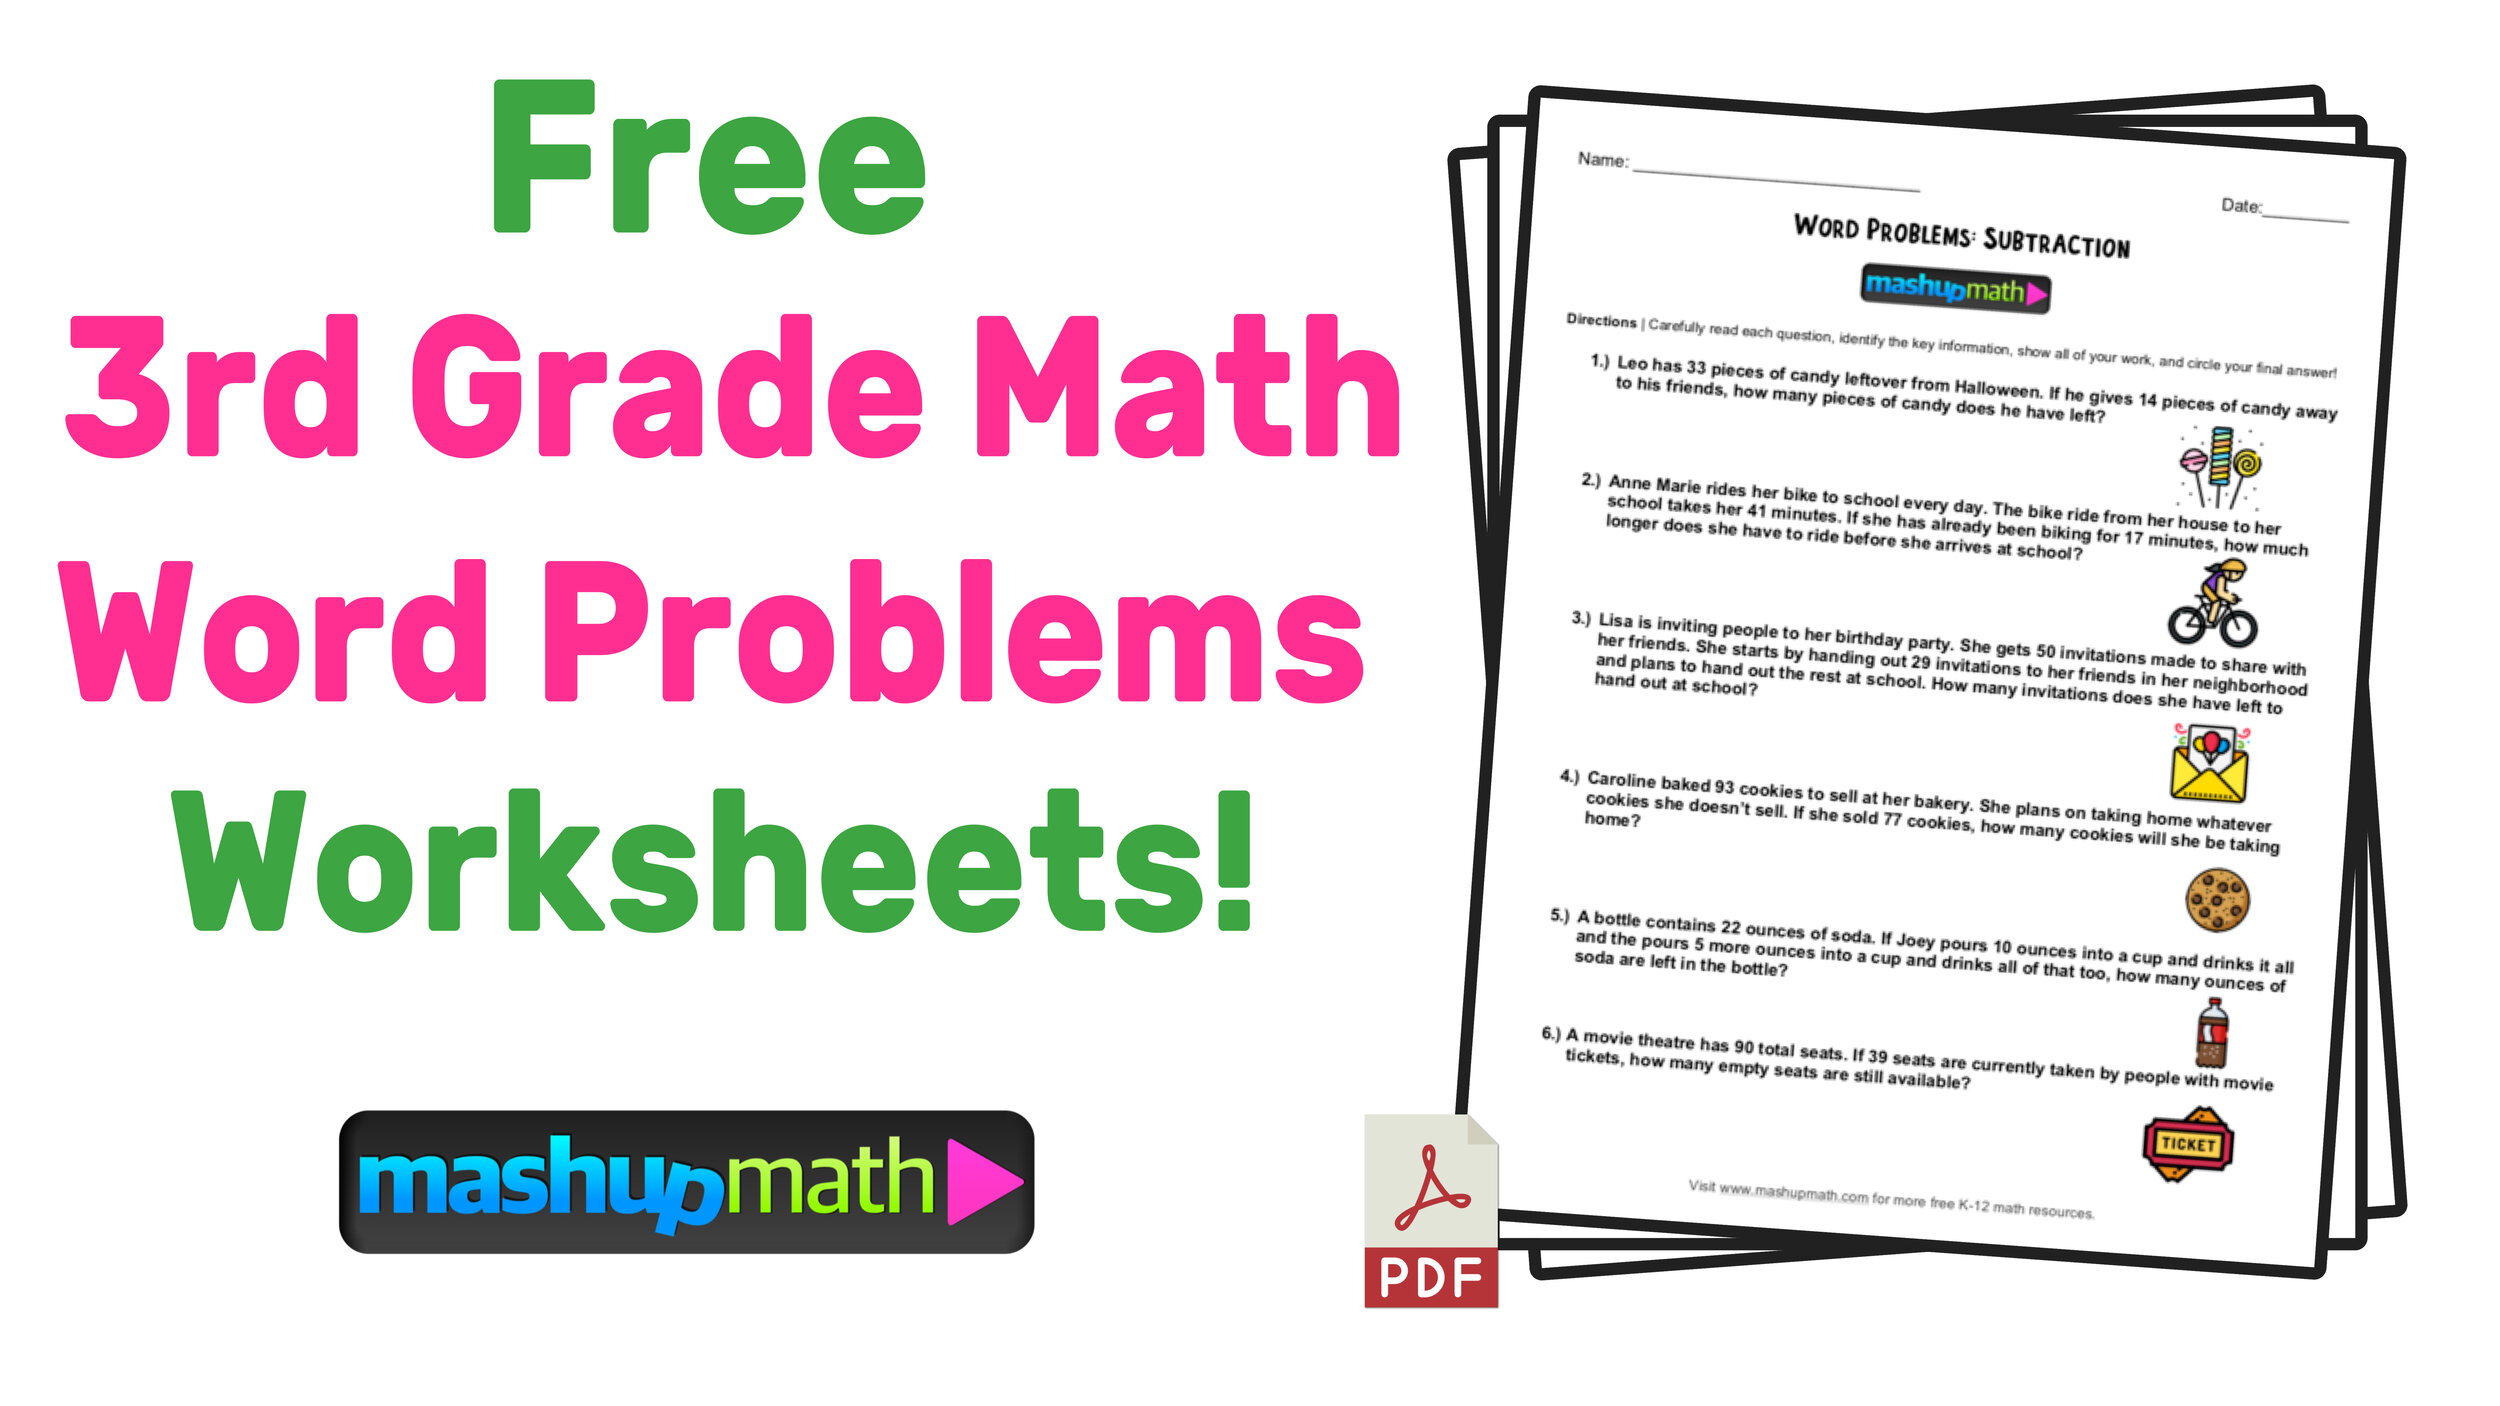 medium resolution of 3rd Grade Math Word Problems: Free Worksheets with Answers — Mashup Math